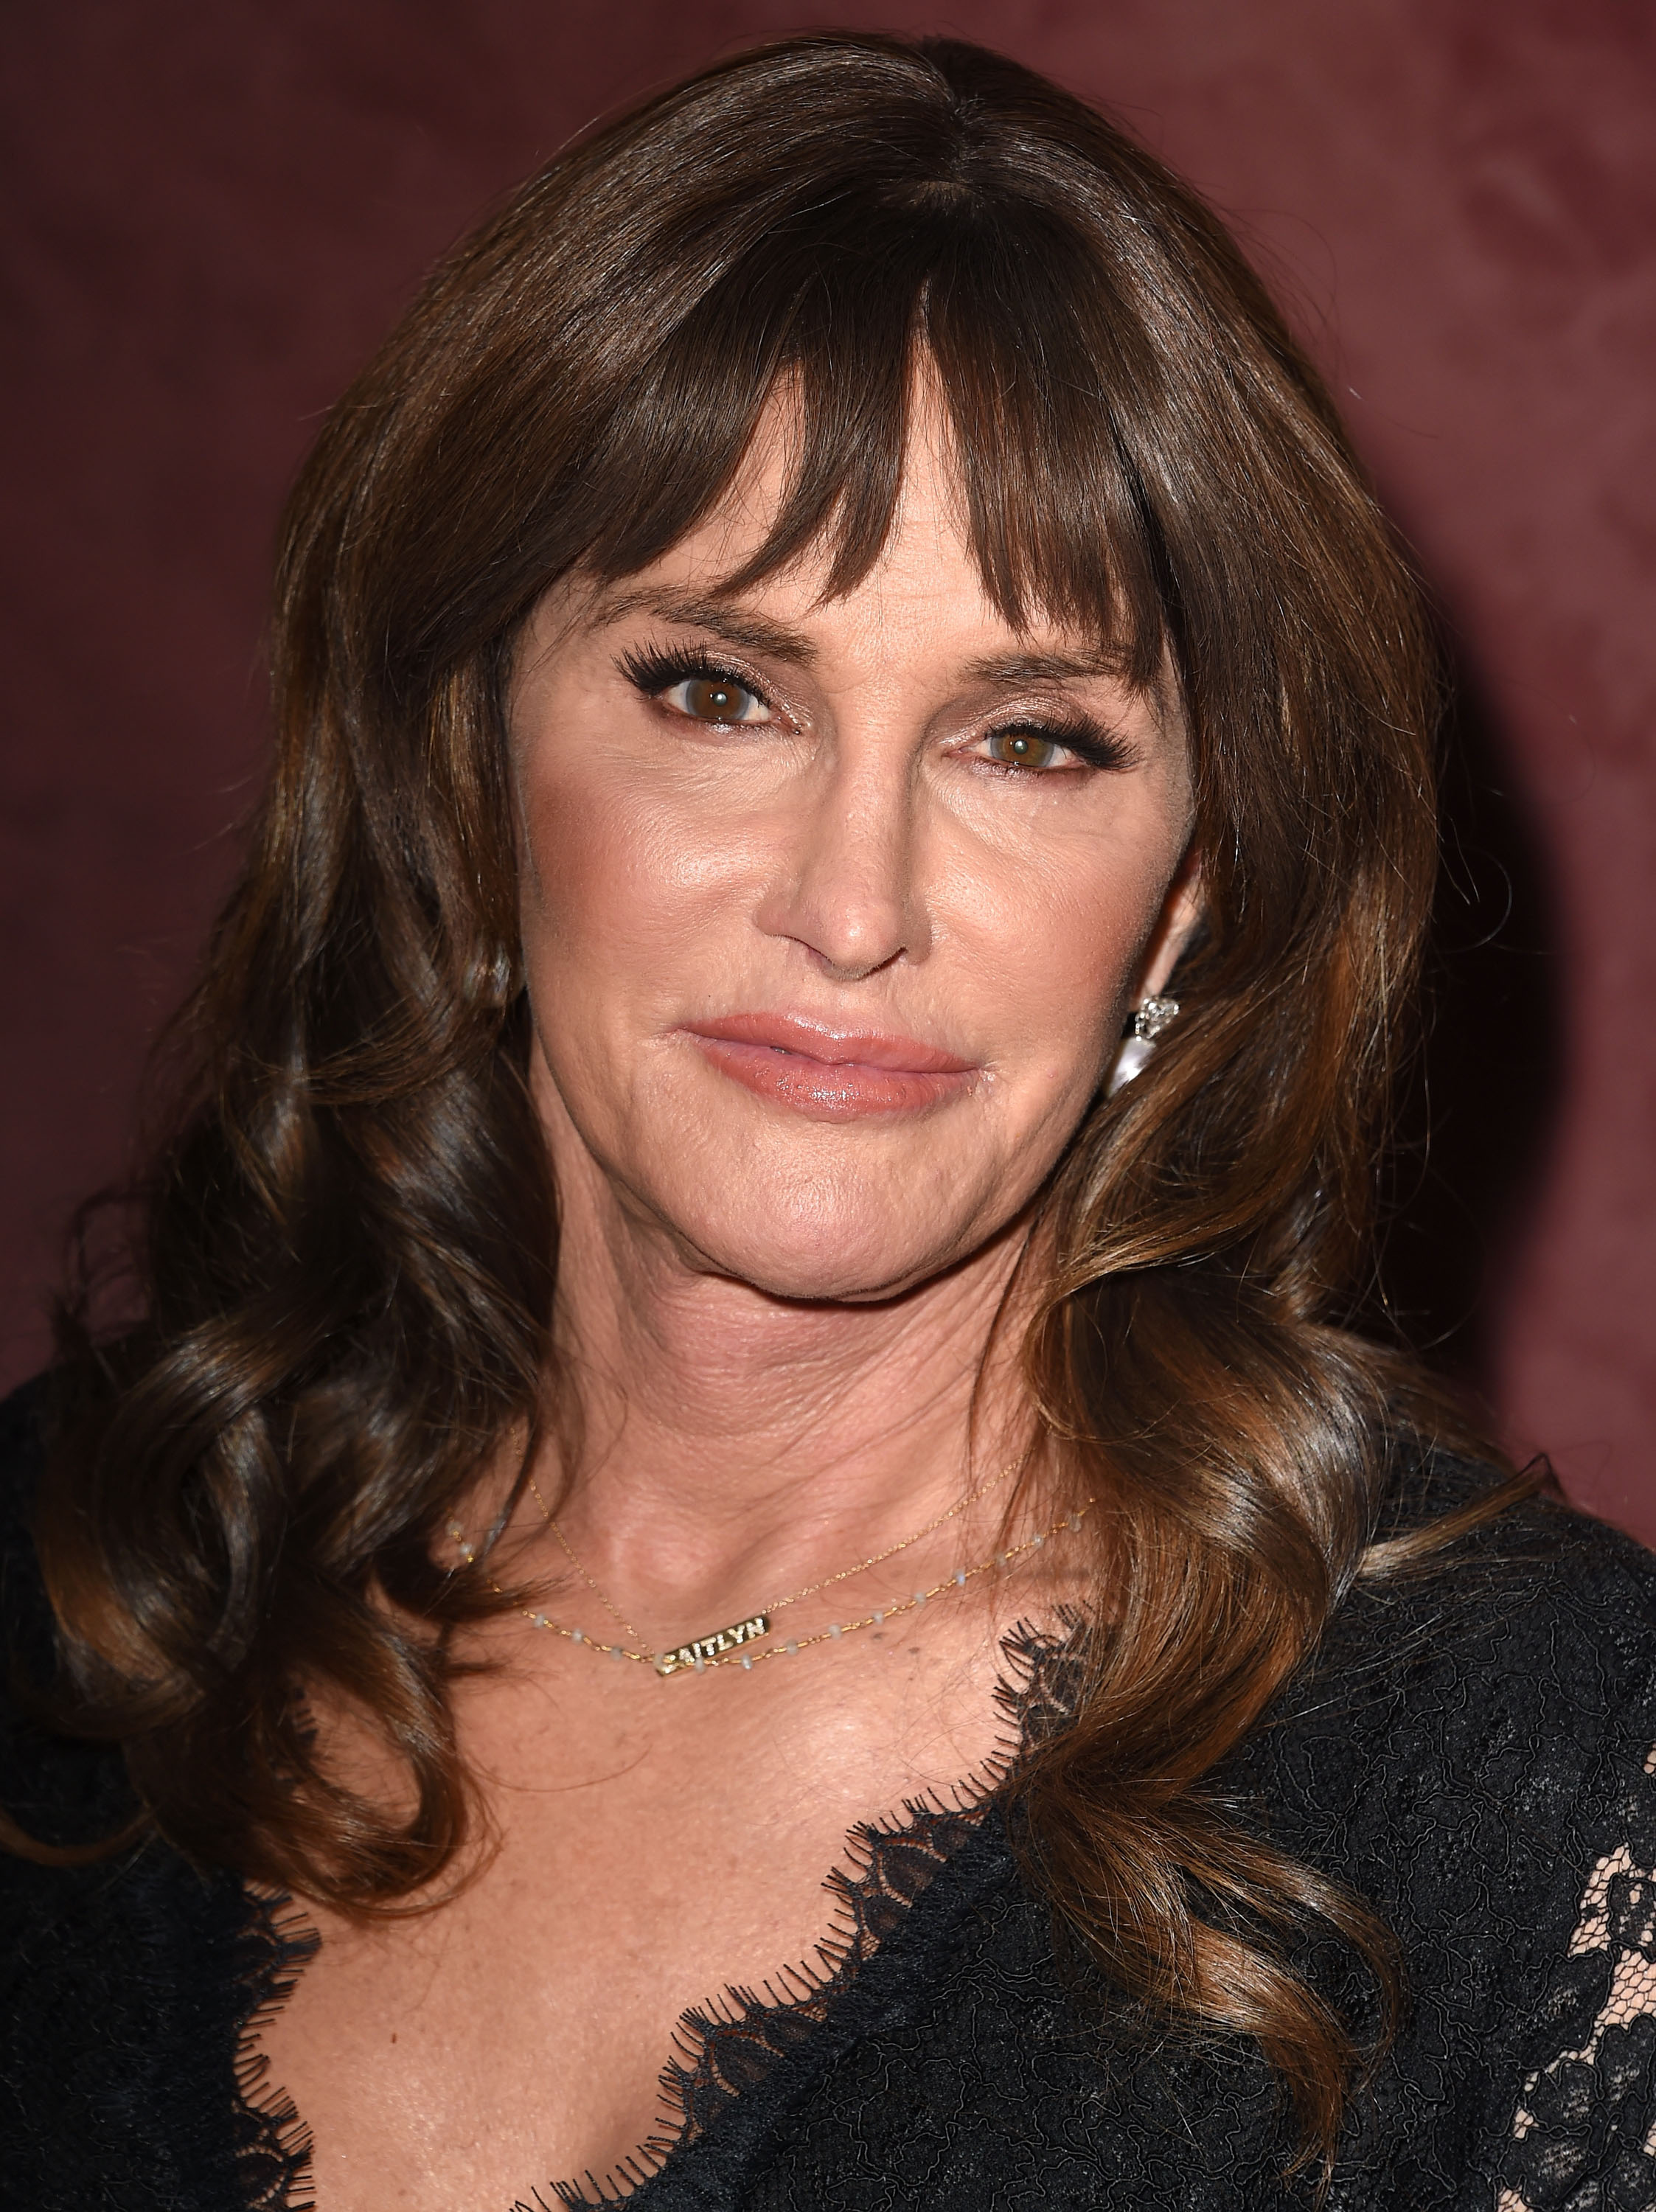 Caitlyn Jenner at a Special Screening Of  Tangerine  on Jan. 4, 2016 in Los Angeles.